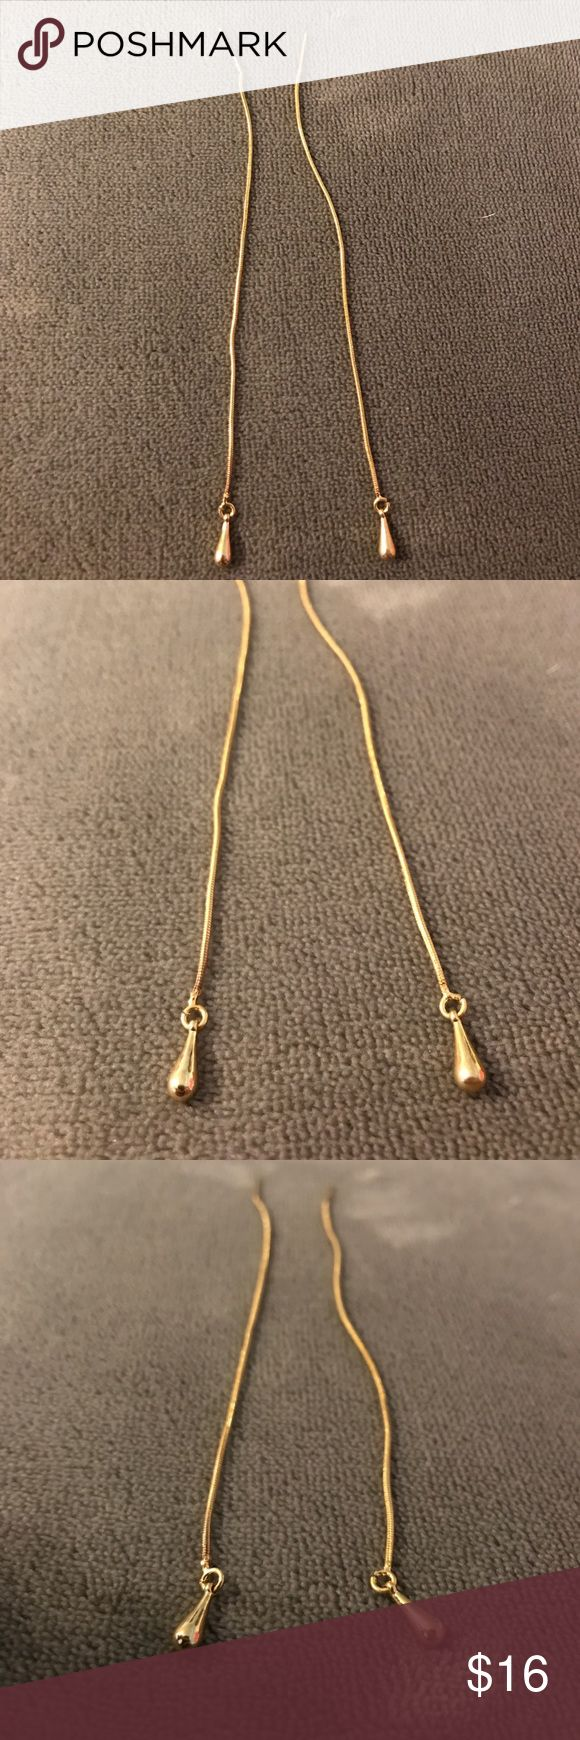 "Threaded ""Pull Through"" Gold Pendent Earrings *NWB Never Worn Before Gold ""Pull Through"" Pendent Earrings. Simple, Elegant, & the Perfect Accessory to an Outfit Jewelry Earrings"